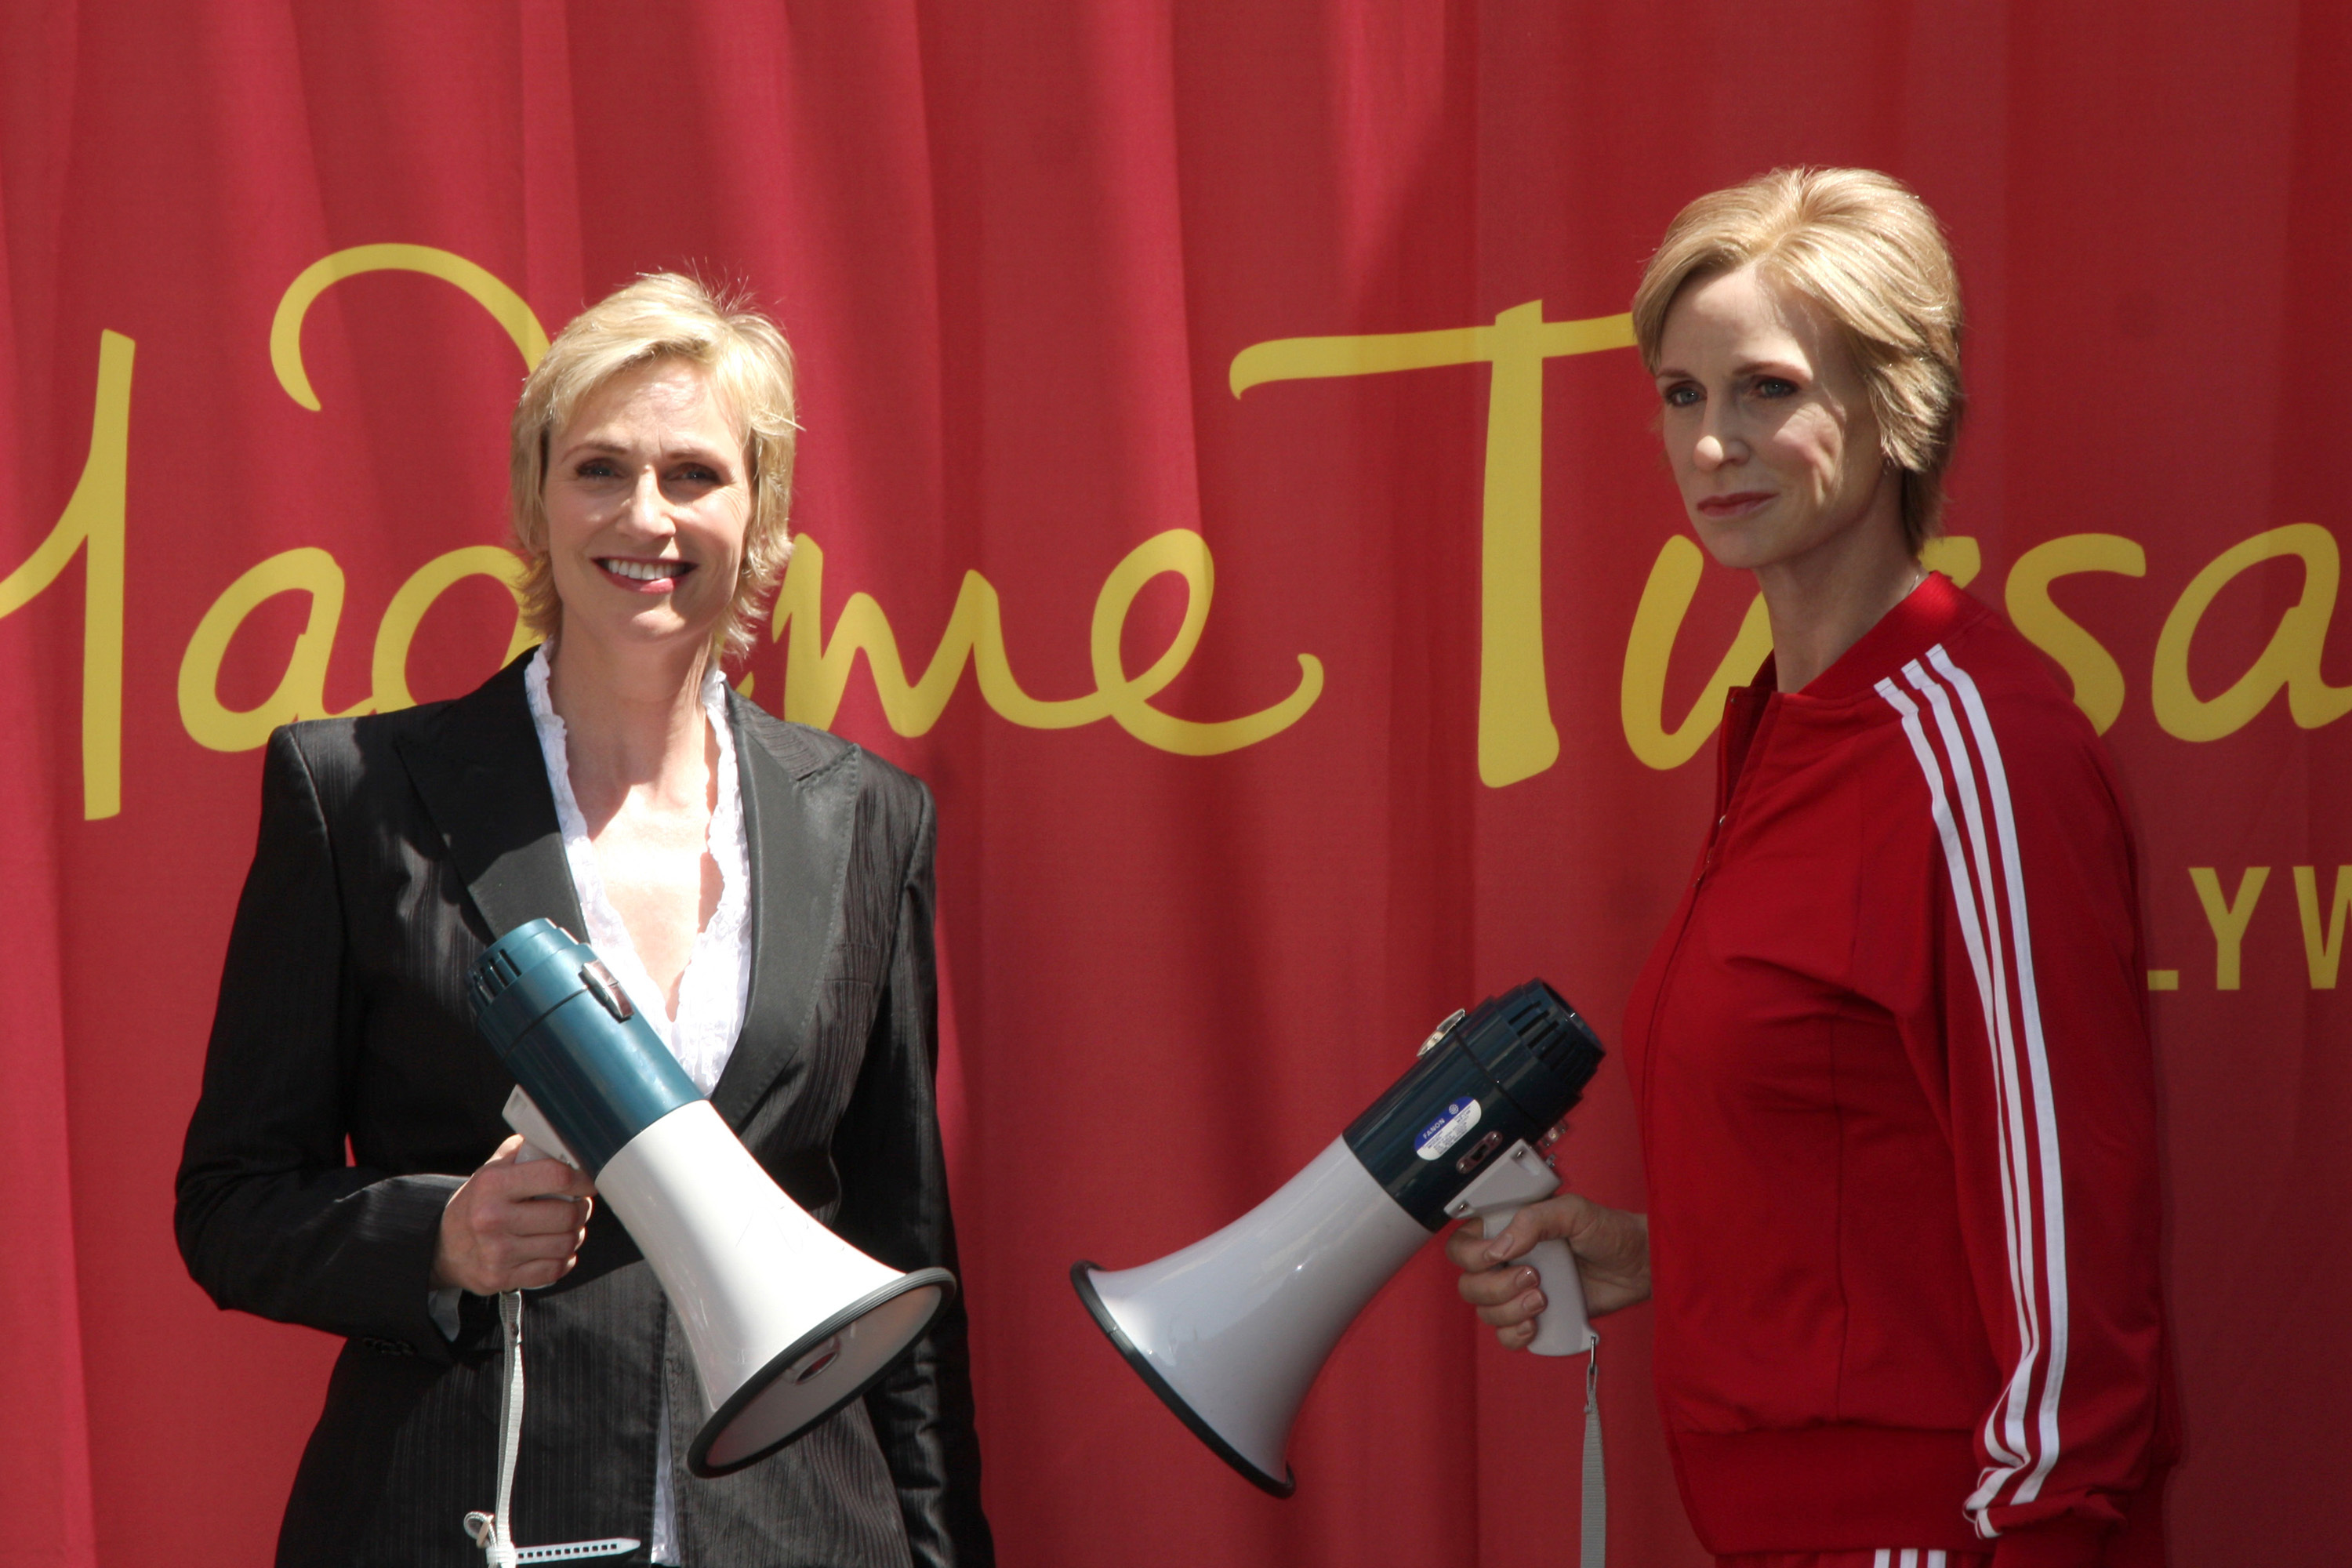 "Jane Lynch unveils her Madame Tussauds waxworks figure in Hollywood, portraying her as Sue Sylvester from the hit television series ""Glee,"" on Aug. 4, 2010. (WENN)"